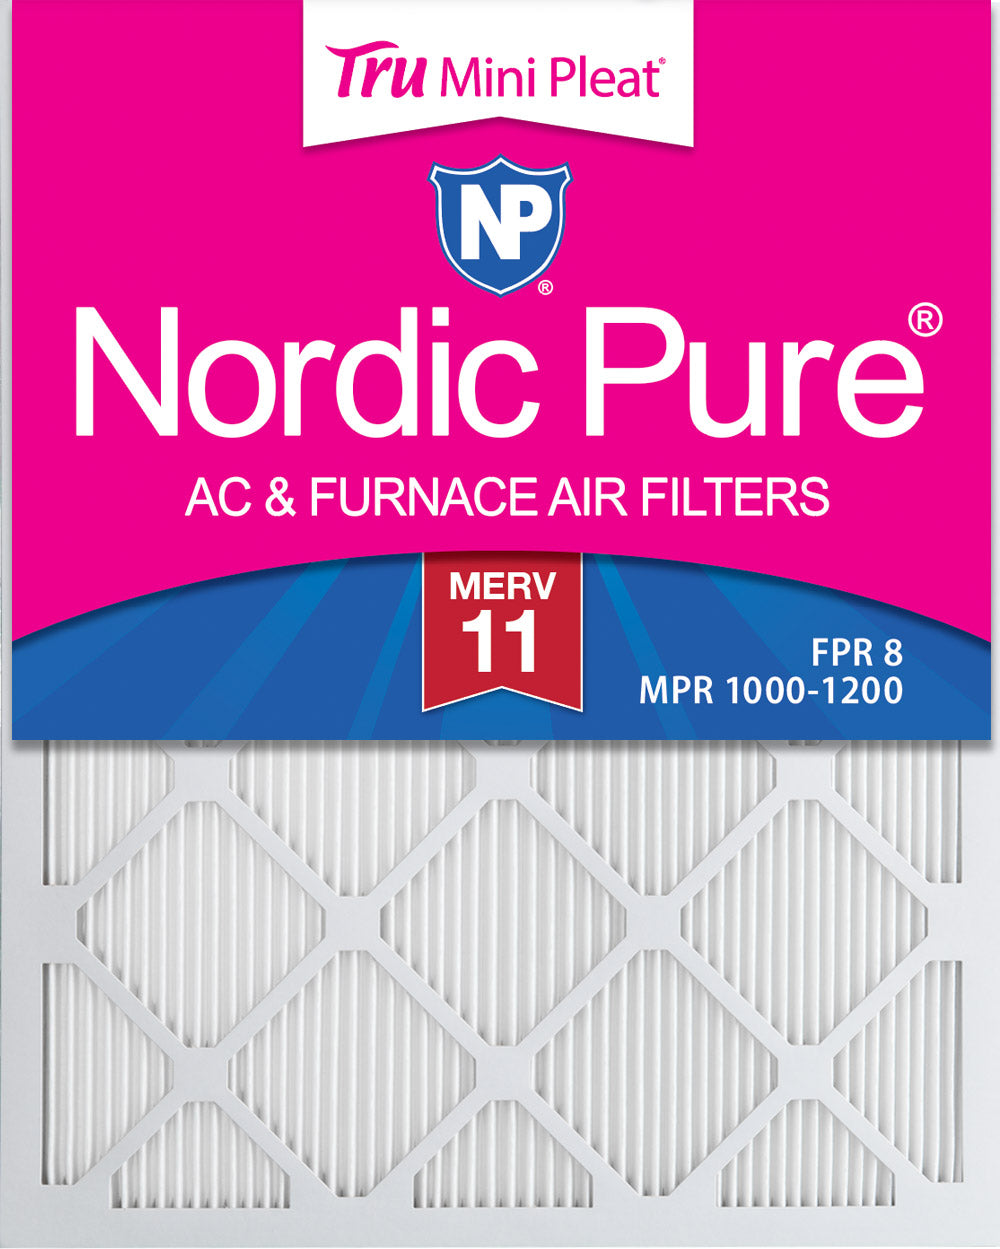 12x24x1 Tru Mini Pleat MERV 11 AC Furnace Air Filters 6 Pack